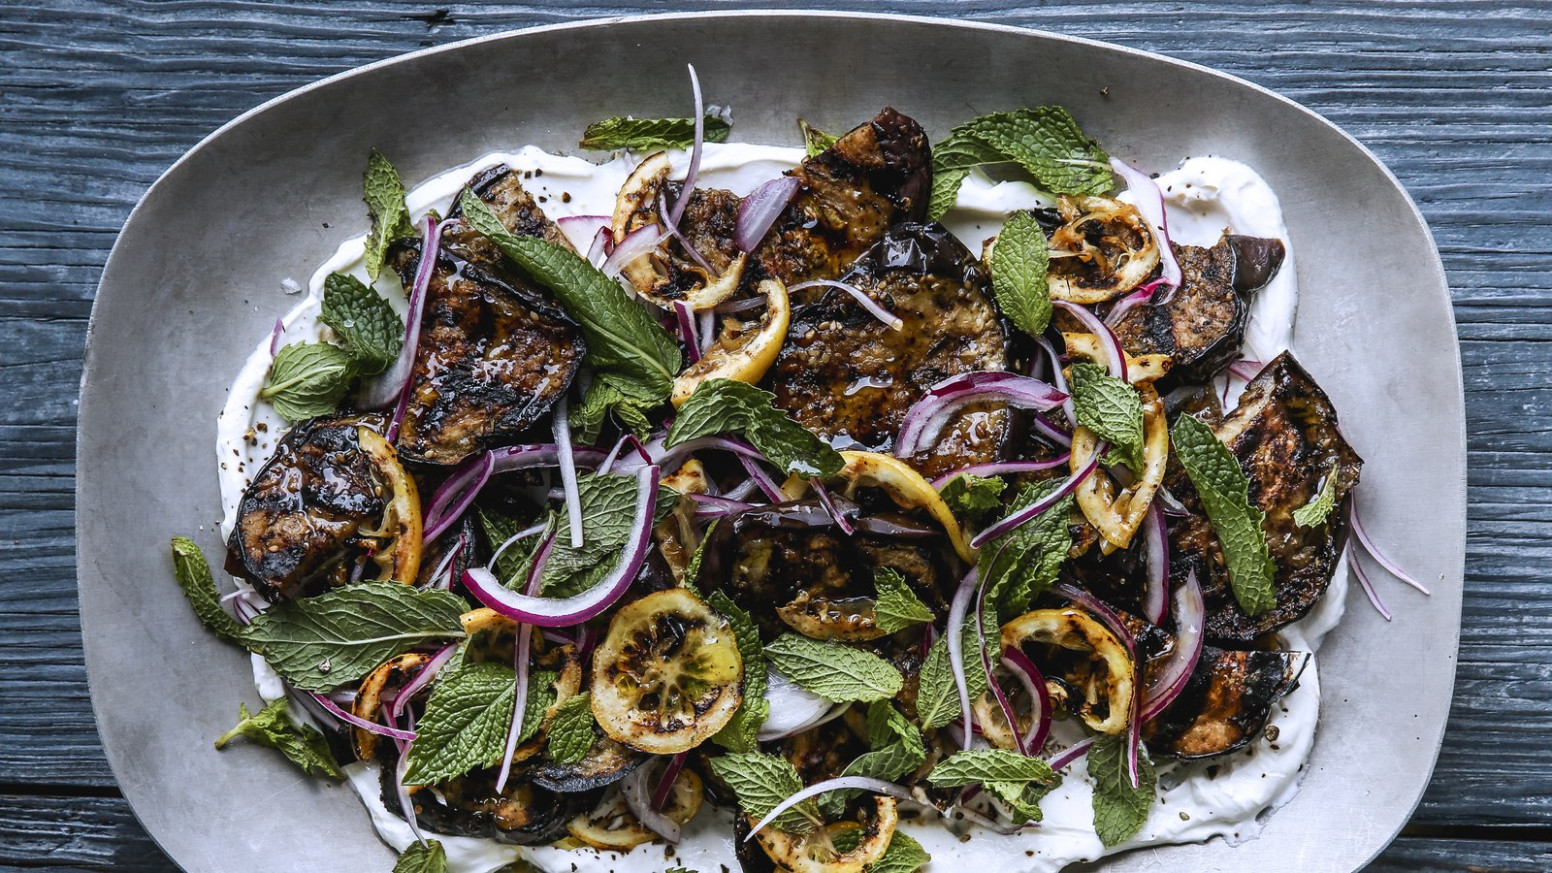 36 Eggplant Recipes that Go Beyond Baba Ghanoush - Bon ...